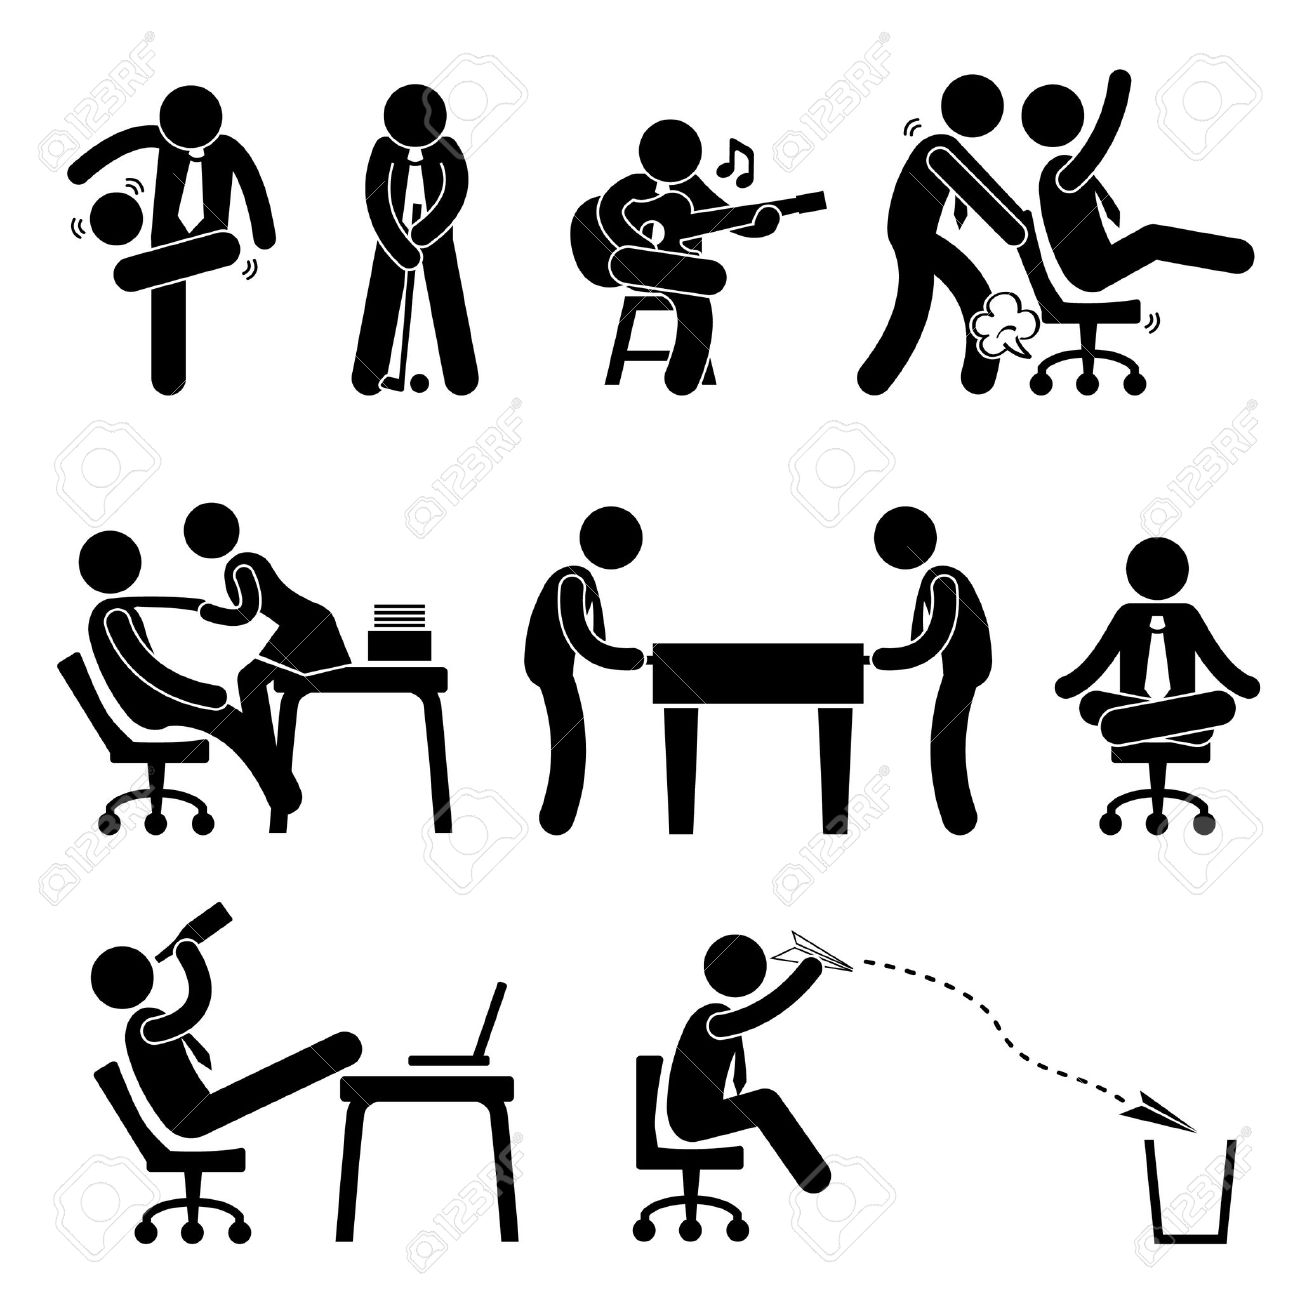 Staff clipart team player Office Free Playing Having Stick